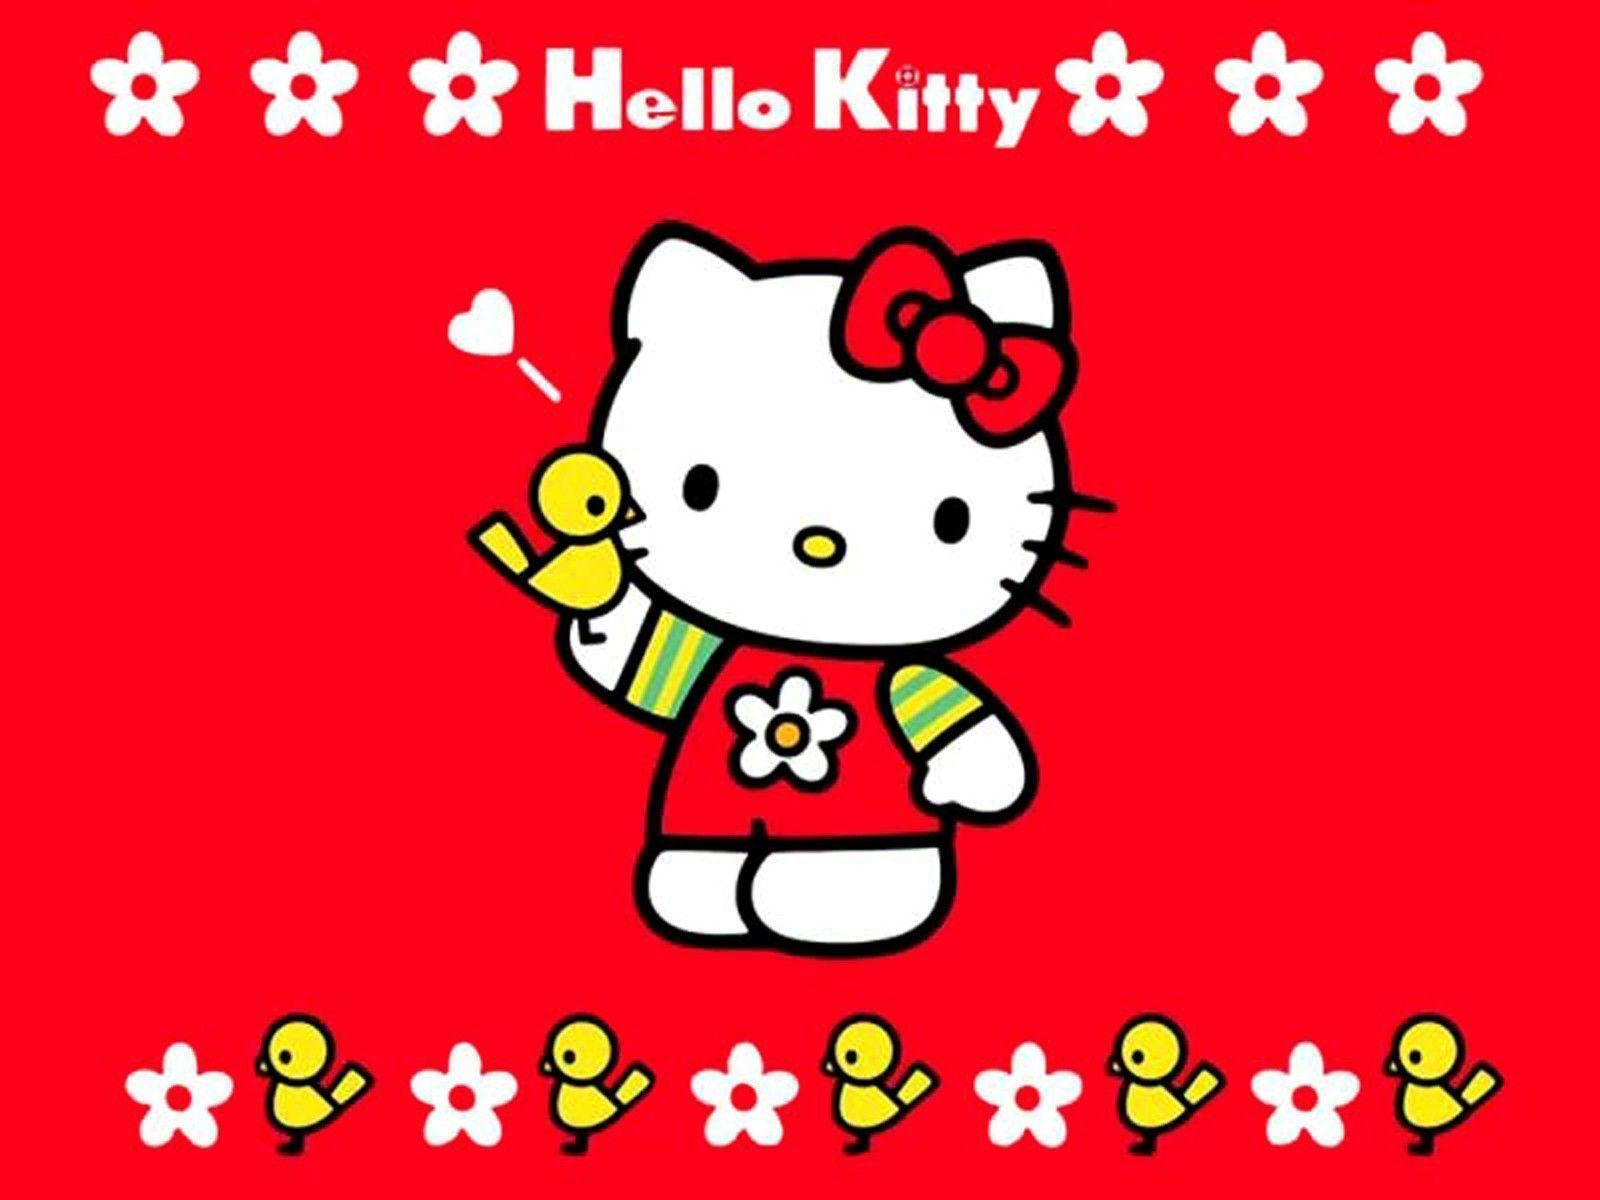 Best Wallpaper Hello Kitty Red - AXQdGNw  Trends_915636.jpg